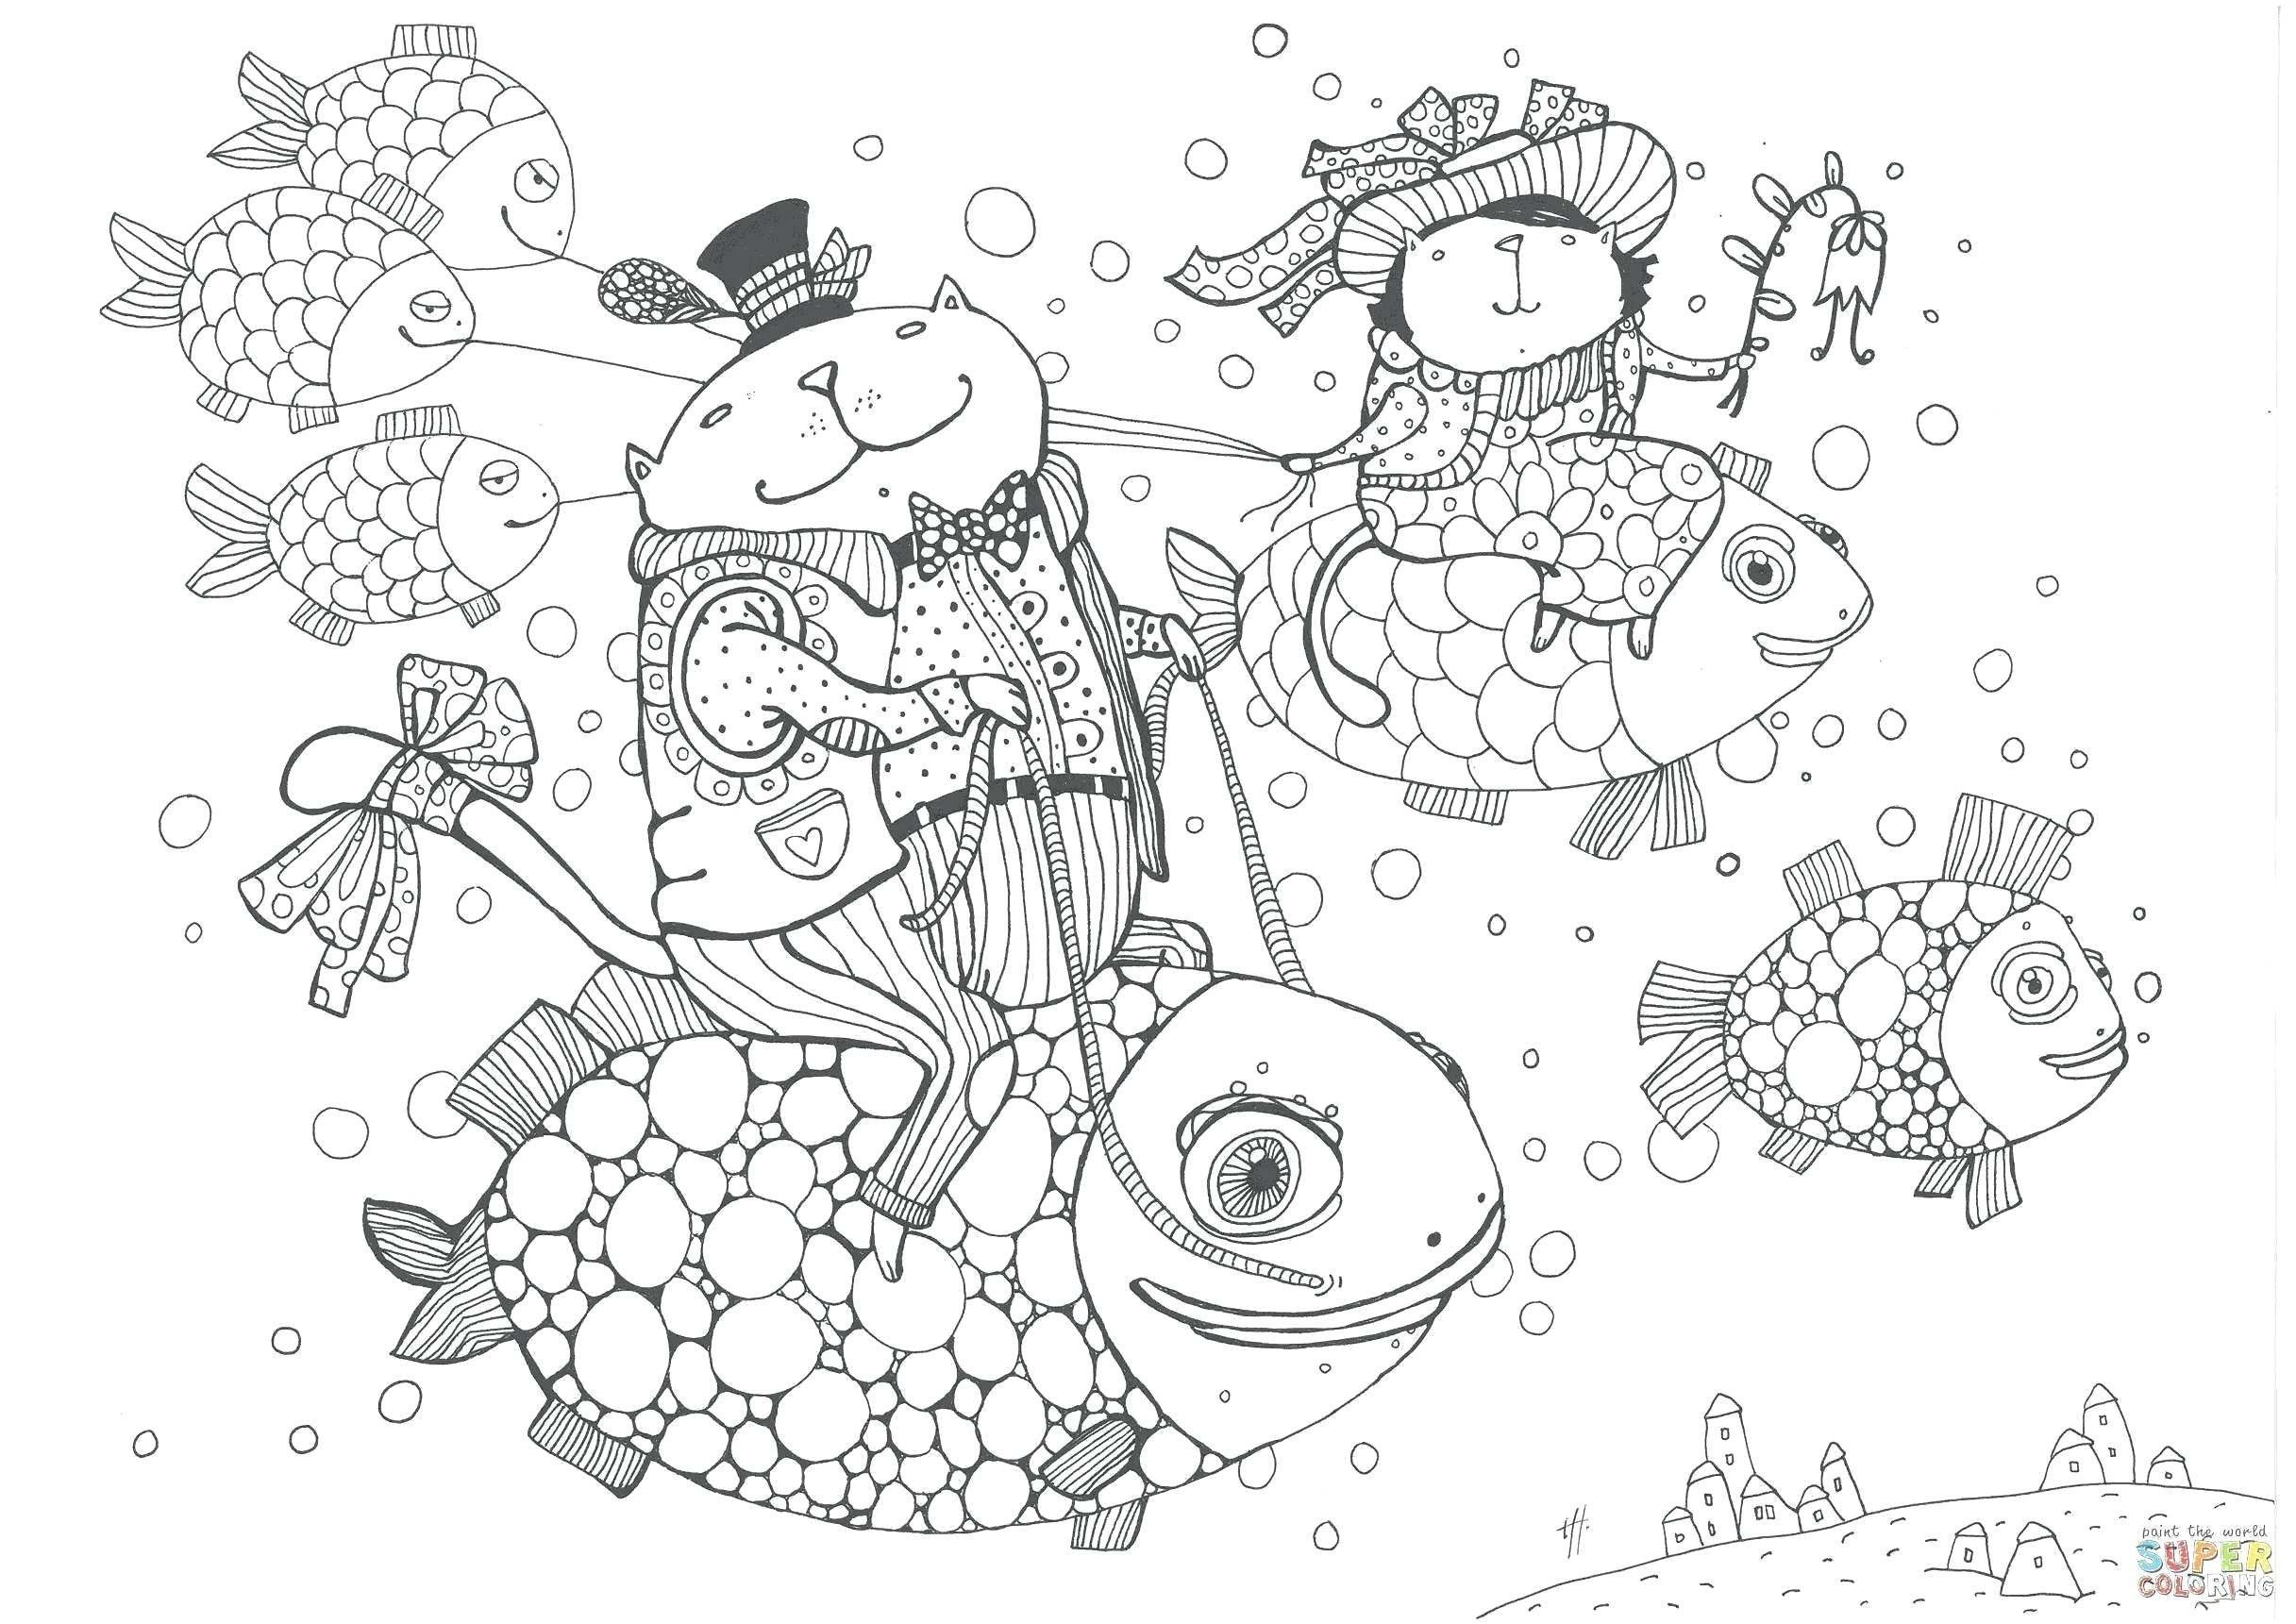 Bob The Builder Coloring Pages New Free Printable Difficult Christmas Coloring Pages Broth Animal Coloring Pages Superhero Coloring Pages Bear Coloring Pages